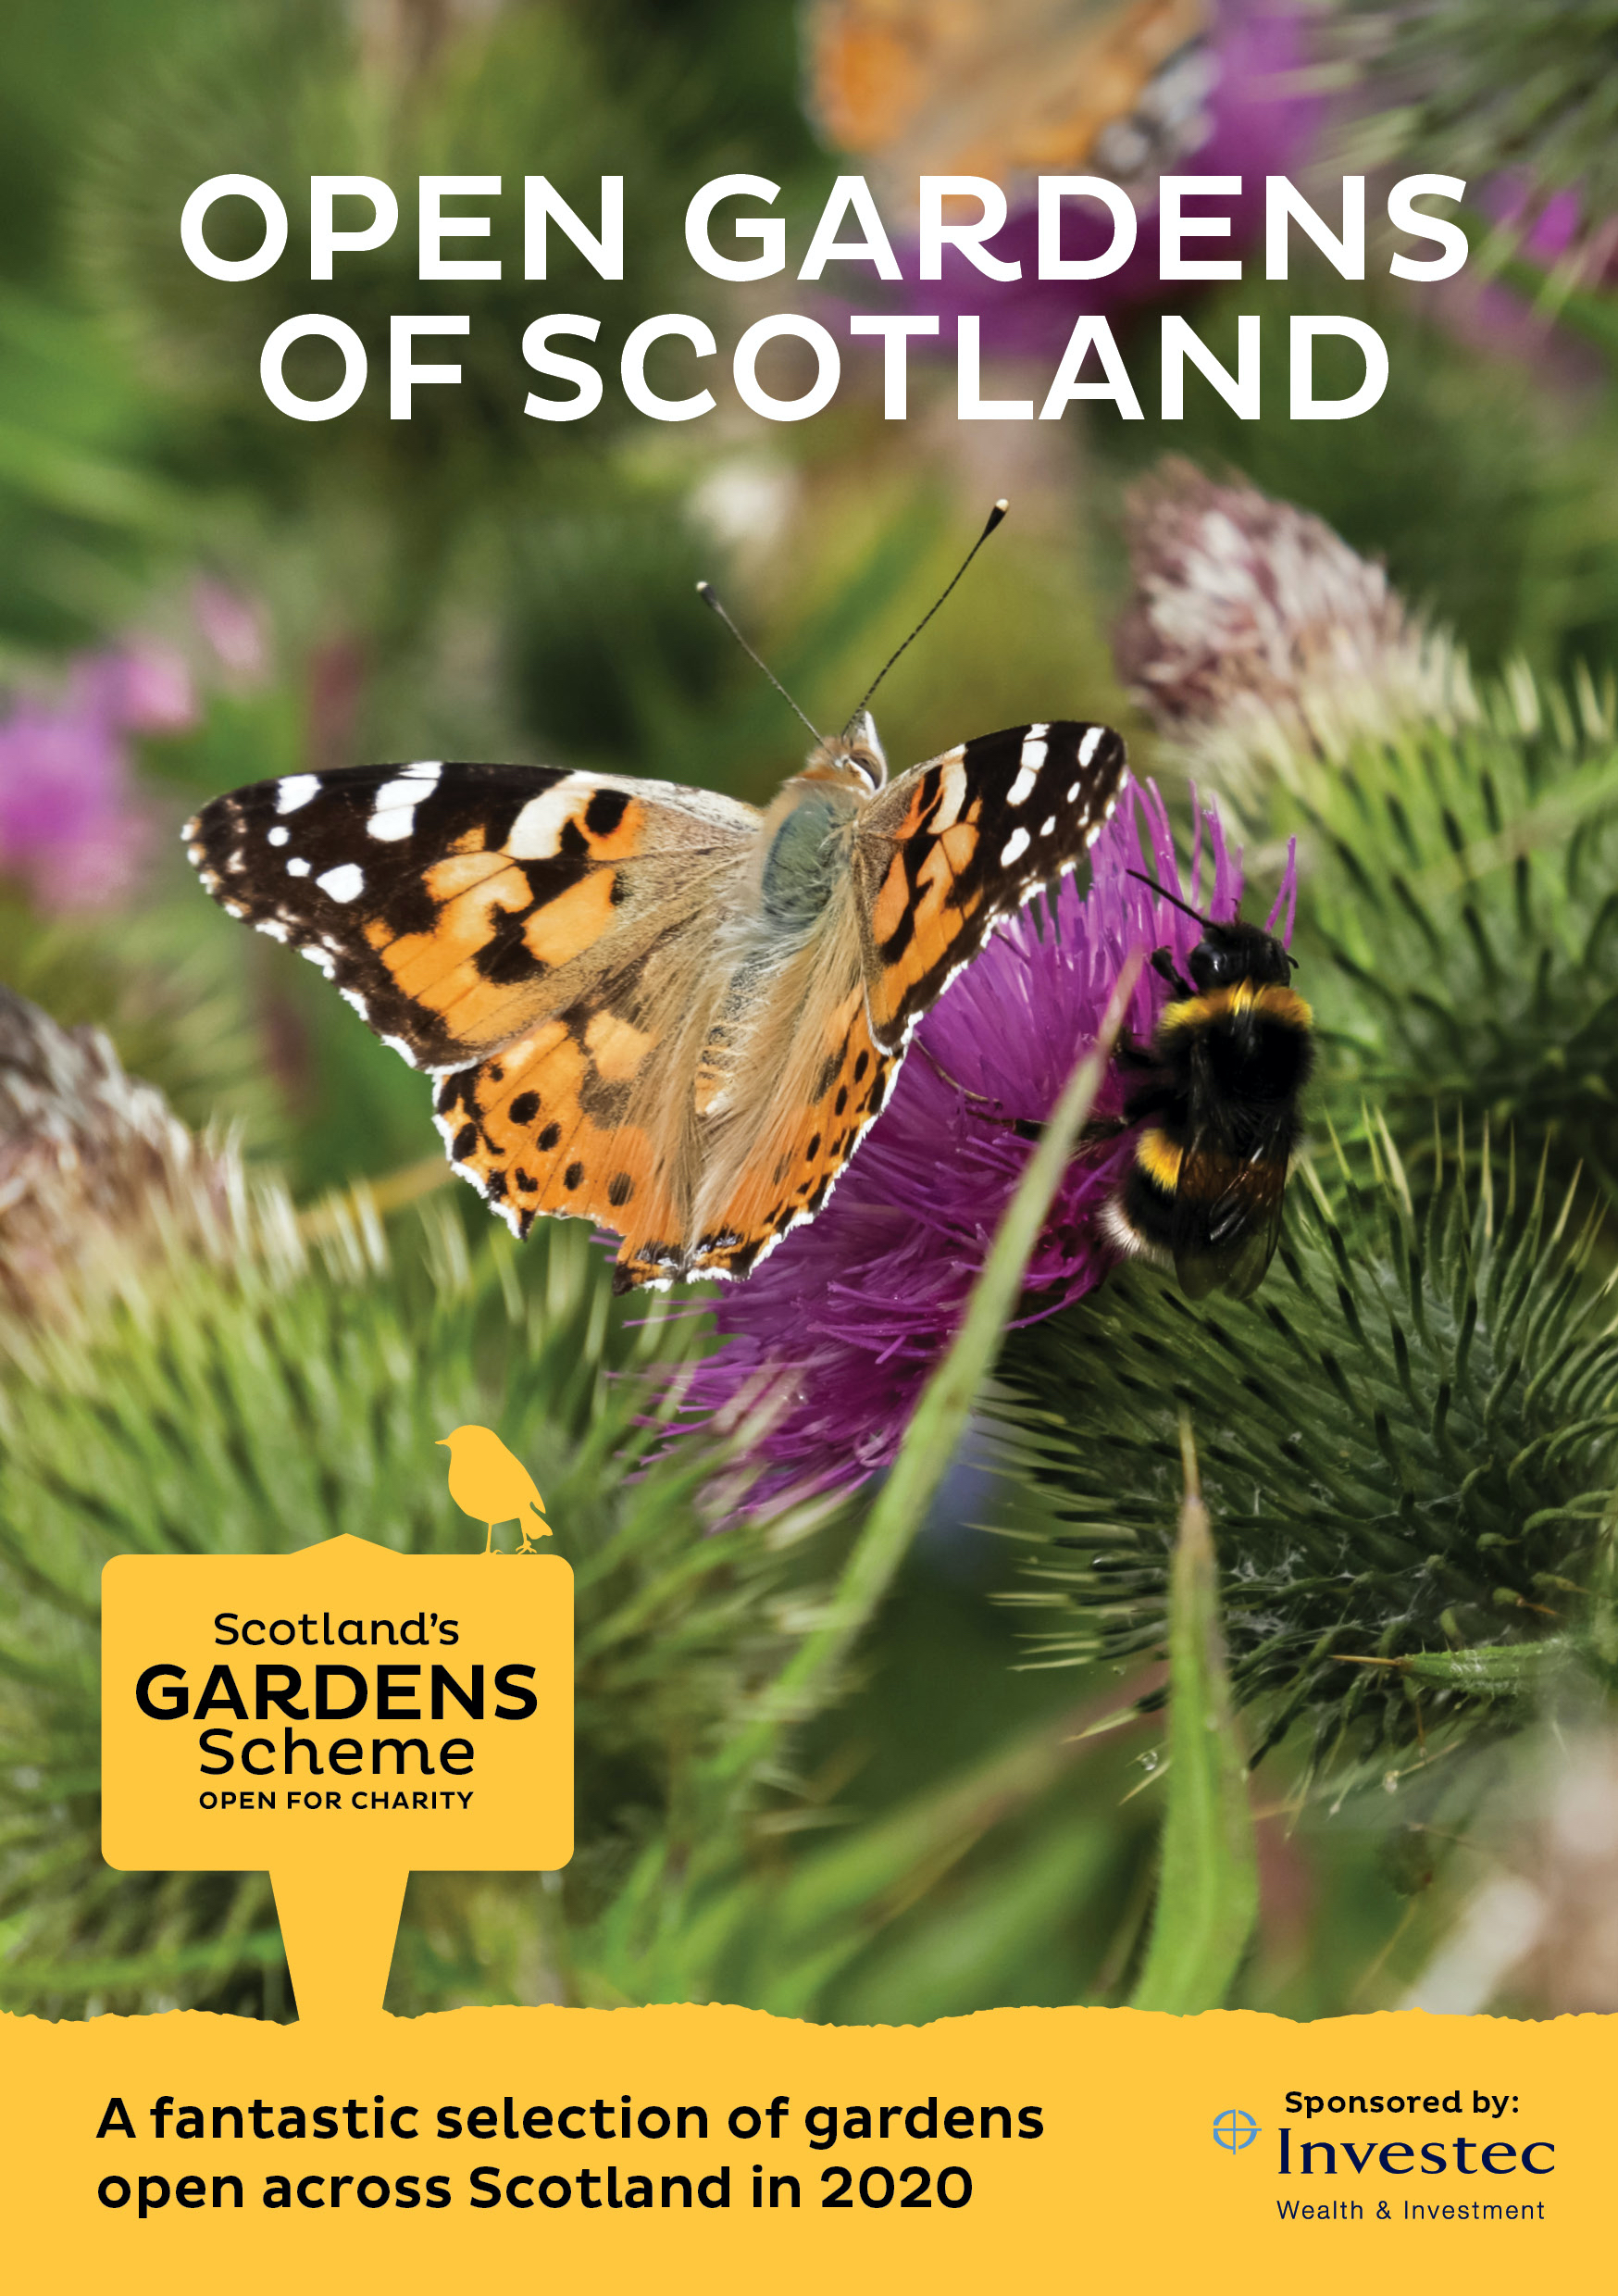 Birds, bees, butterflies and brilliant wee beasties: wildlife and biodiversity in Scotland's open gardens to be celebrated in 2020